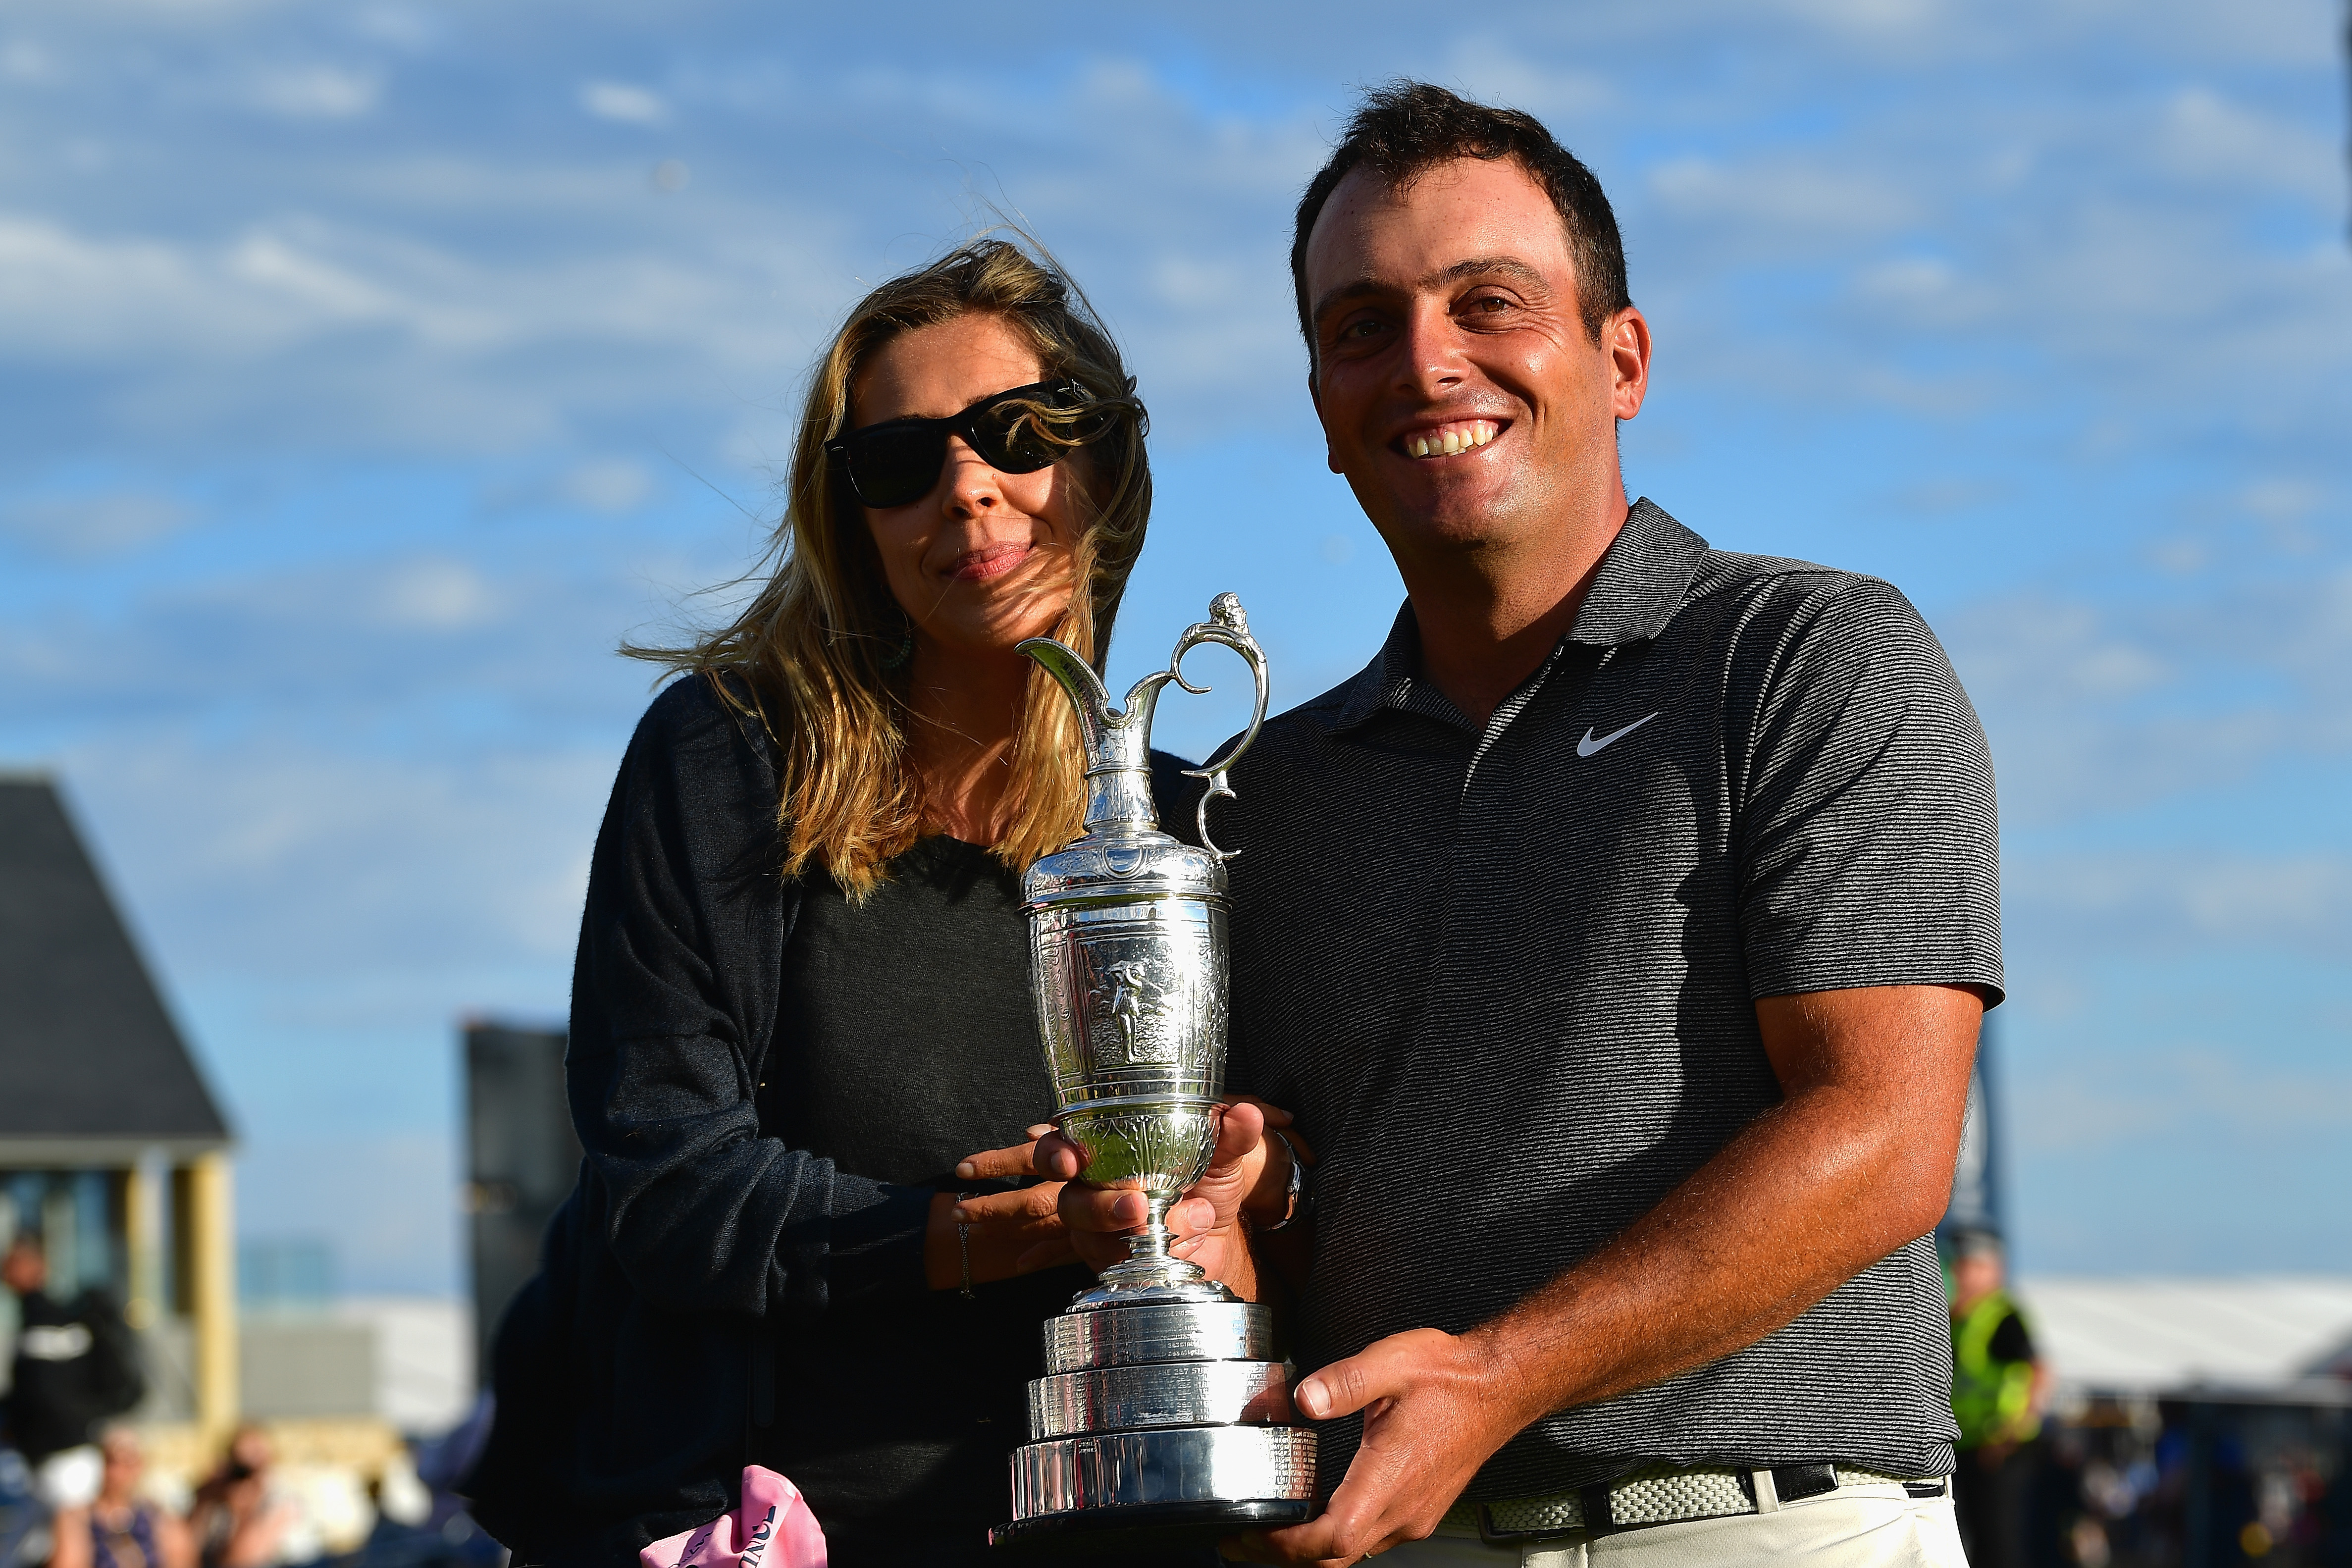 CARNOUSTIE, SCOTLAND - JULY 22:  Francesco Molinari of Italy celebrates with his wife Valentina and the Claret Jug after winning the 147th Open Championship at Carnoustie Golf Club on July 22, 2018 in Carnoustie, Scotland.  (Photo by Stuart Franklin/Getty Images)